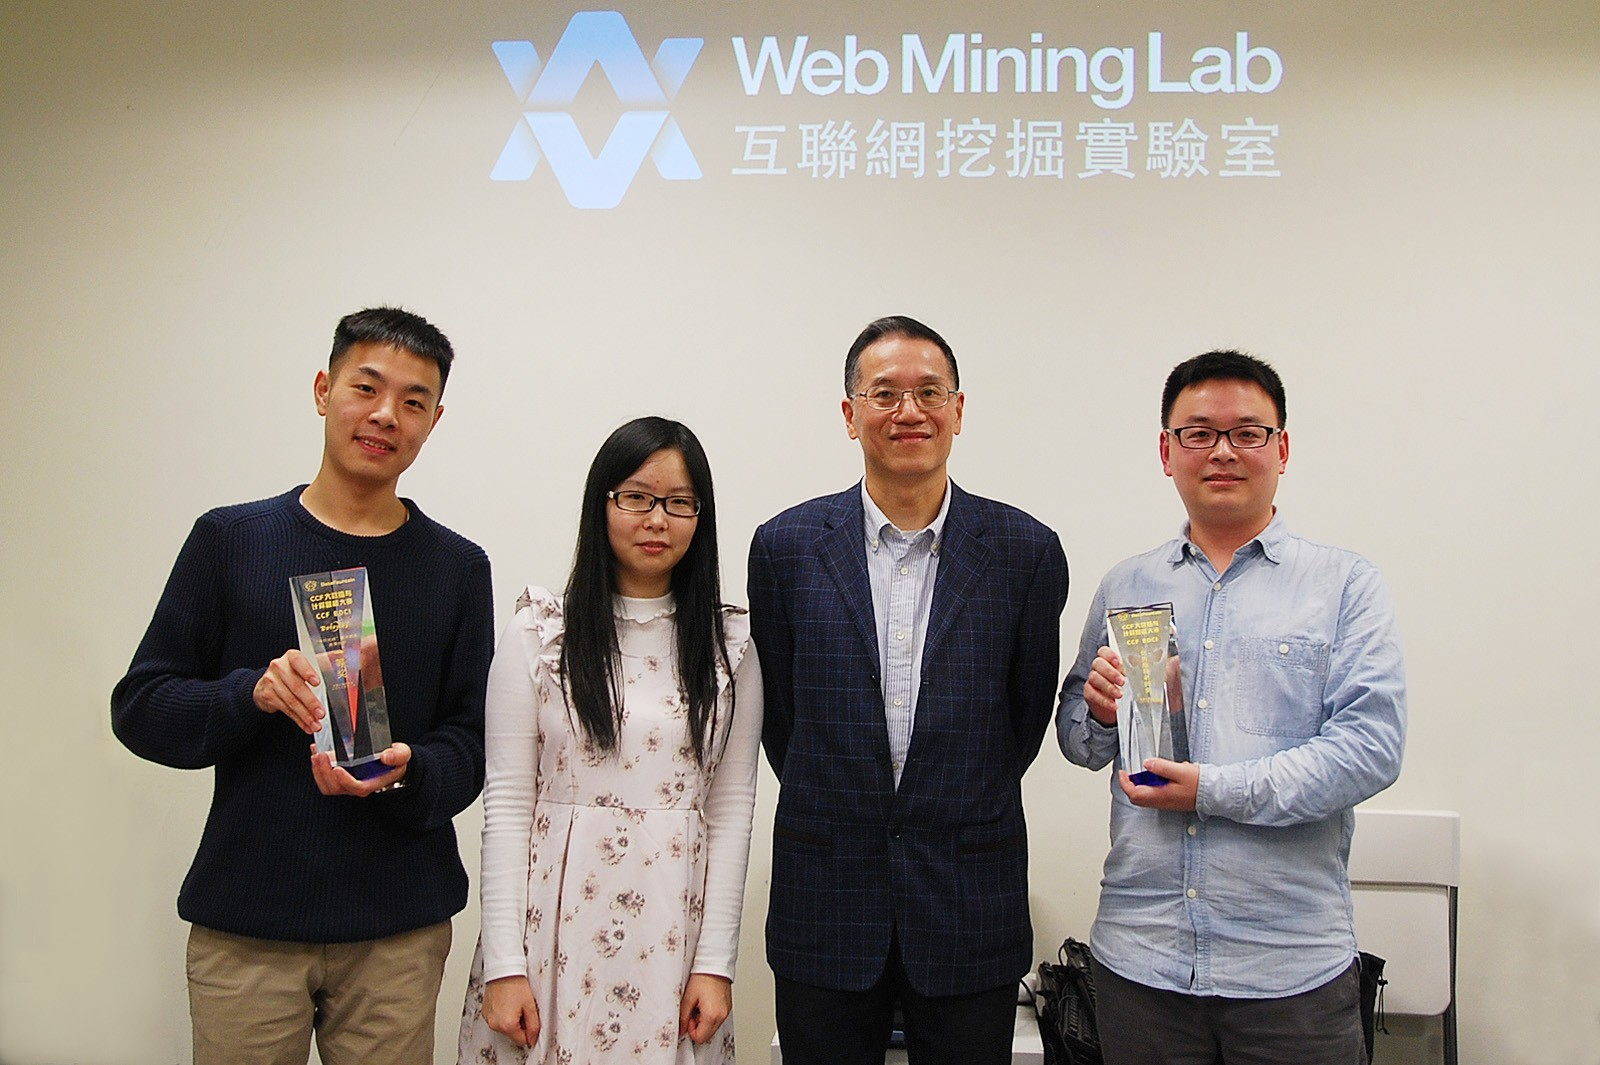 Chair Professor Jonathan Zhu Jianhua (second from right) and the winning team.